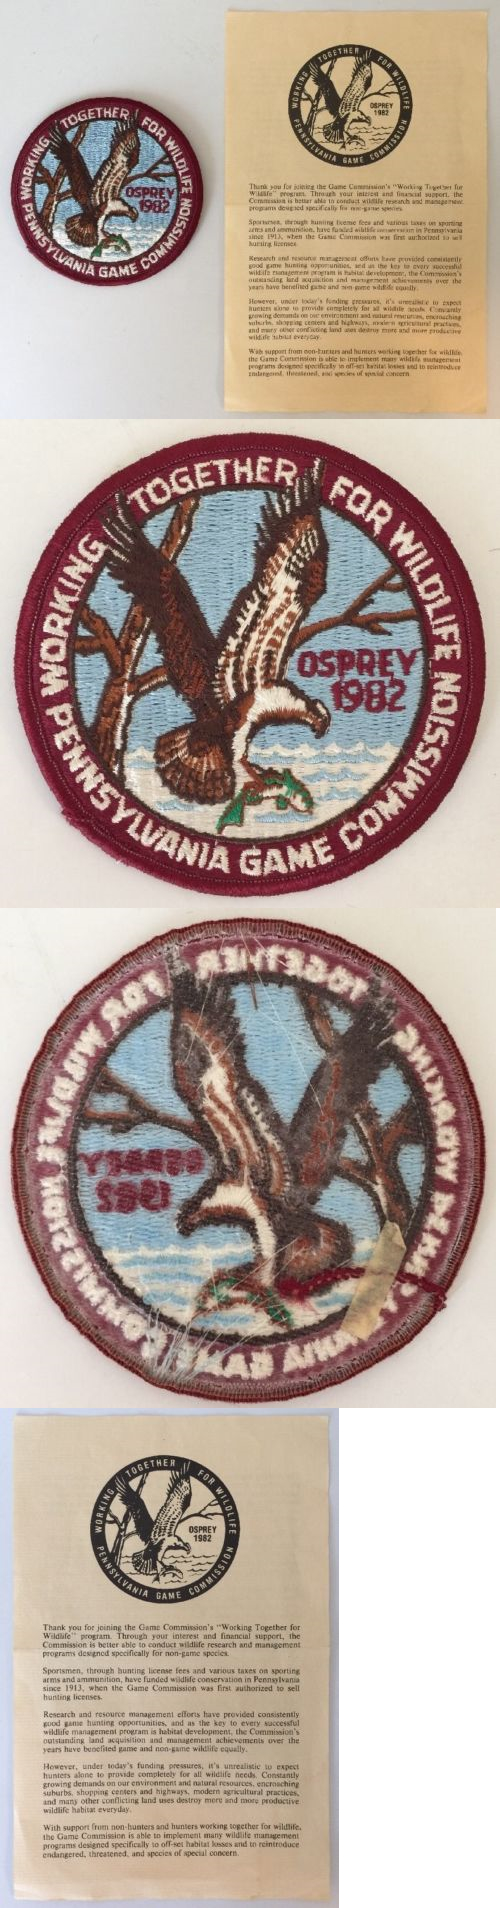 Patches 113337: 1982 Osprey Working Together For Wildlife